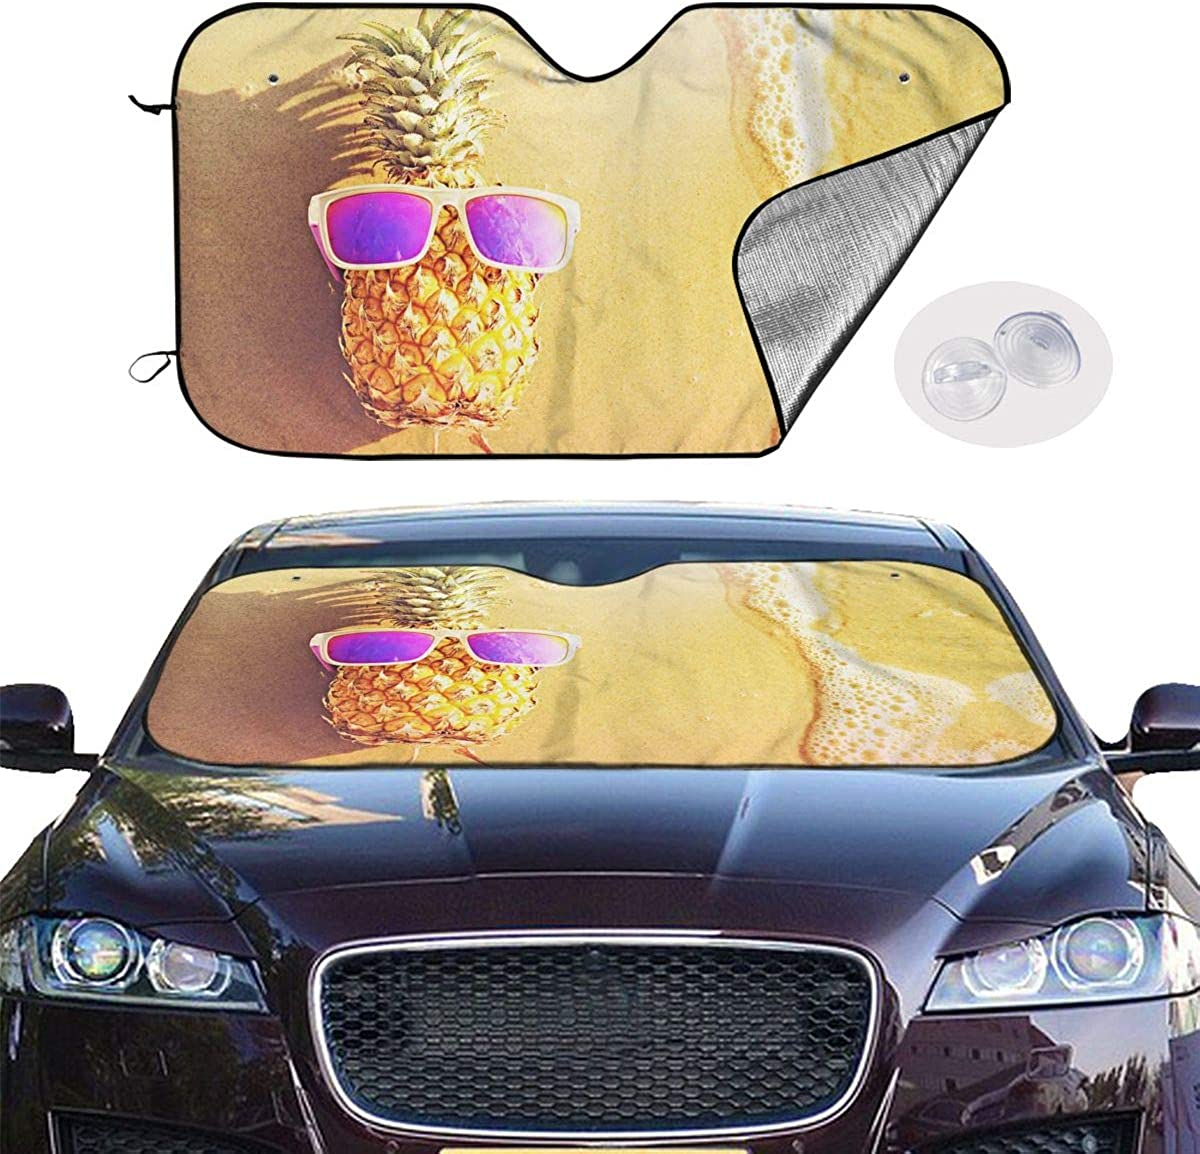 Sunshade to Keep Your Vehicle Cool Fits Windshields of Various Sizes Blocks UV Rays Sun Visor Protector 51.2x27.5 in ZJBLHEQ Paint America Flag Car Windshield Sun Shade